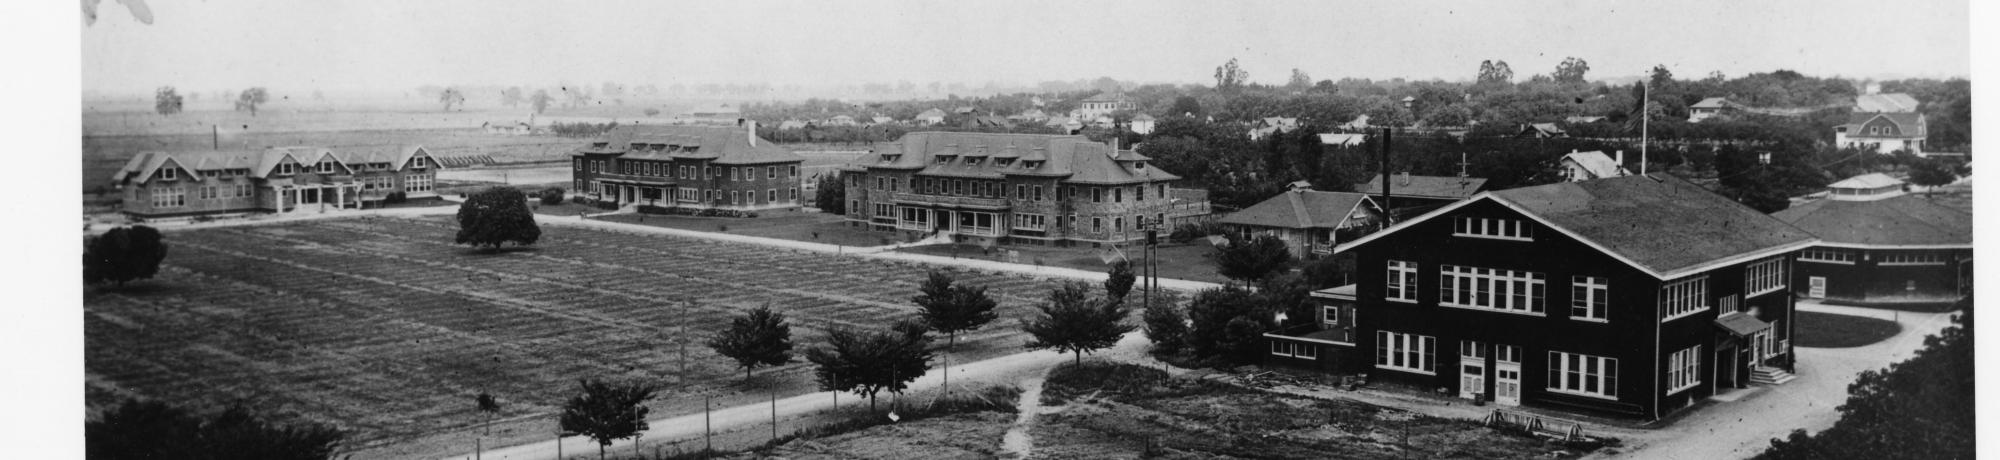 University farm dorms and office, 1912